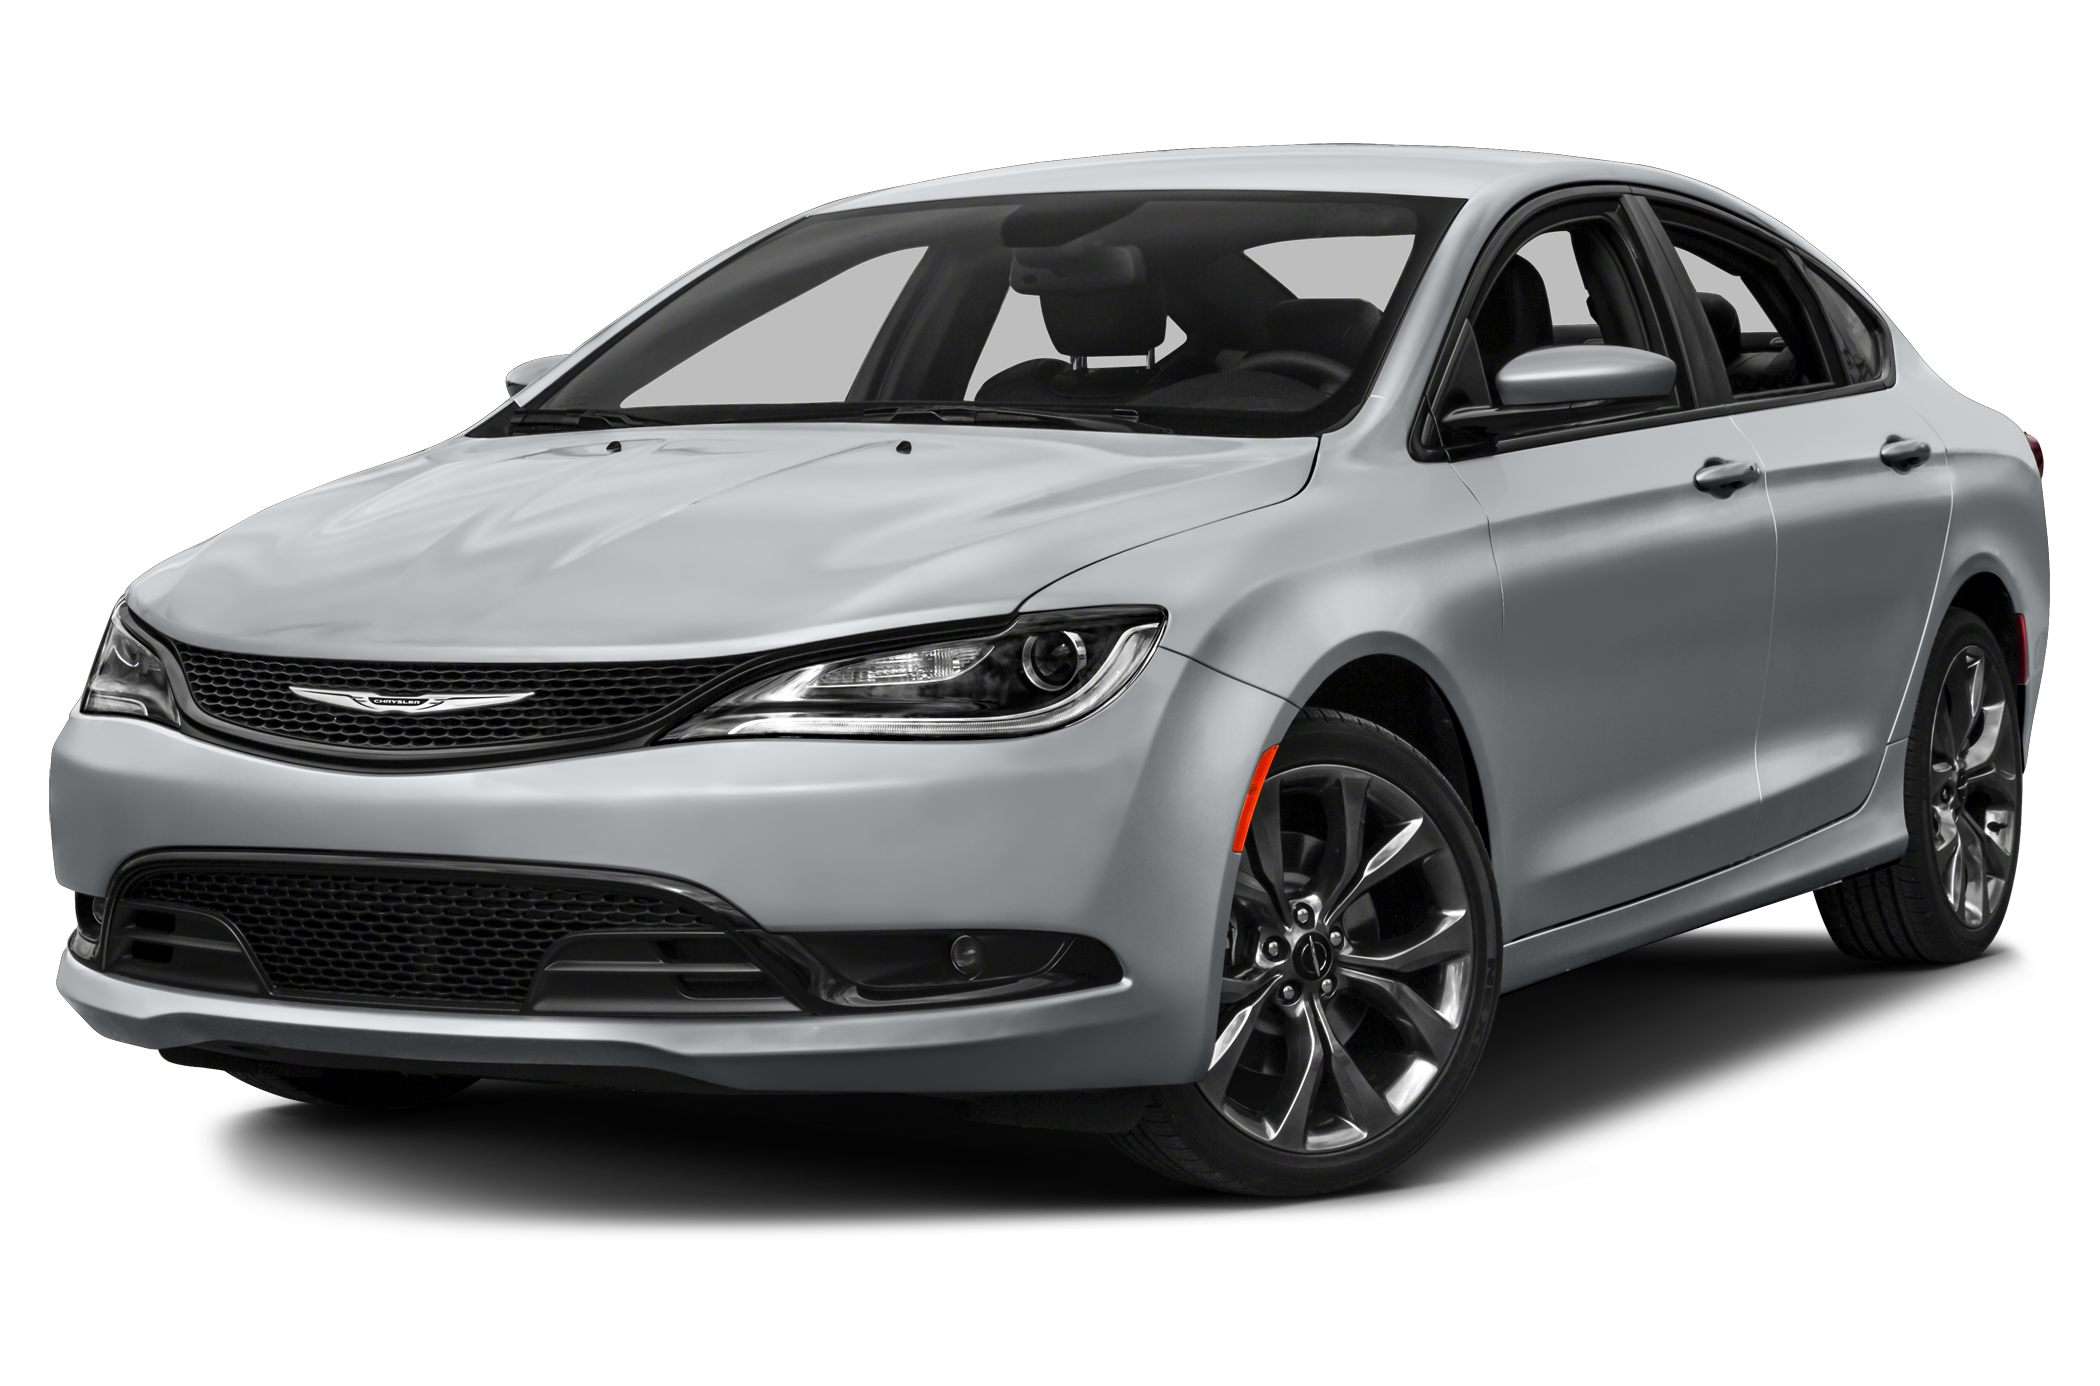 2015 Chrysler 200 S Sedan for sale in Milford for $32,170 with 5 miles